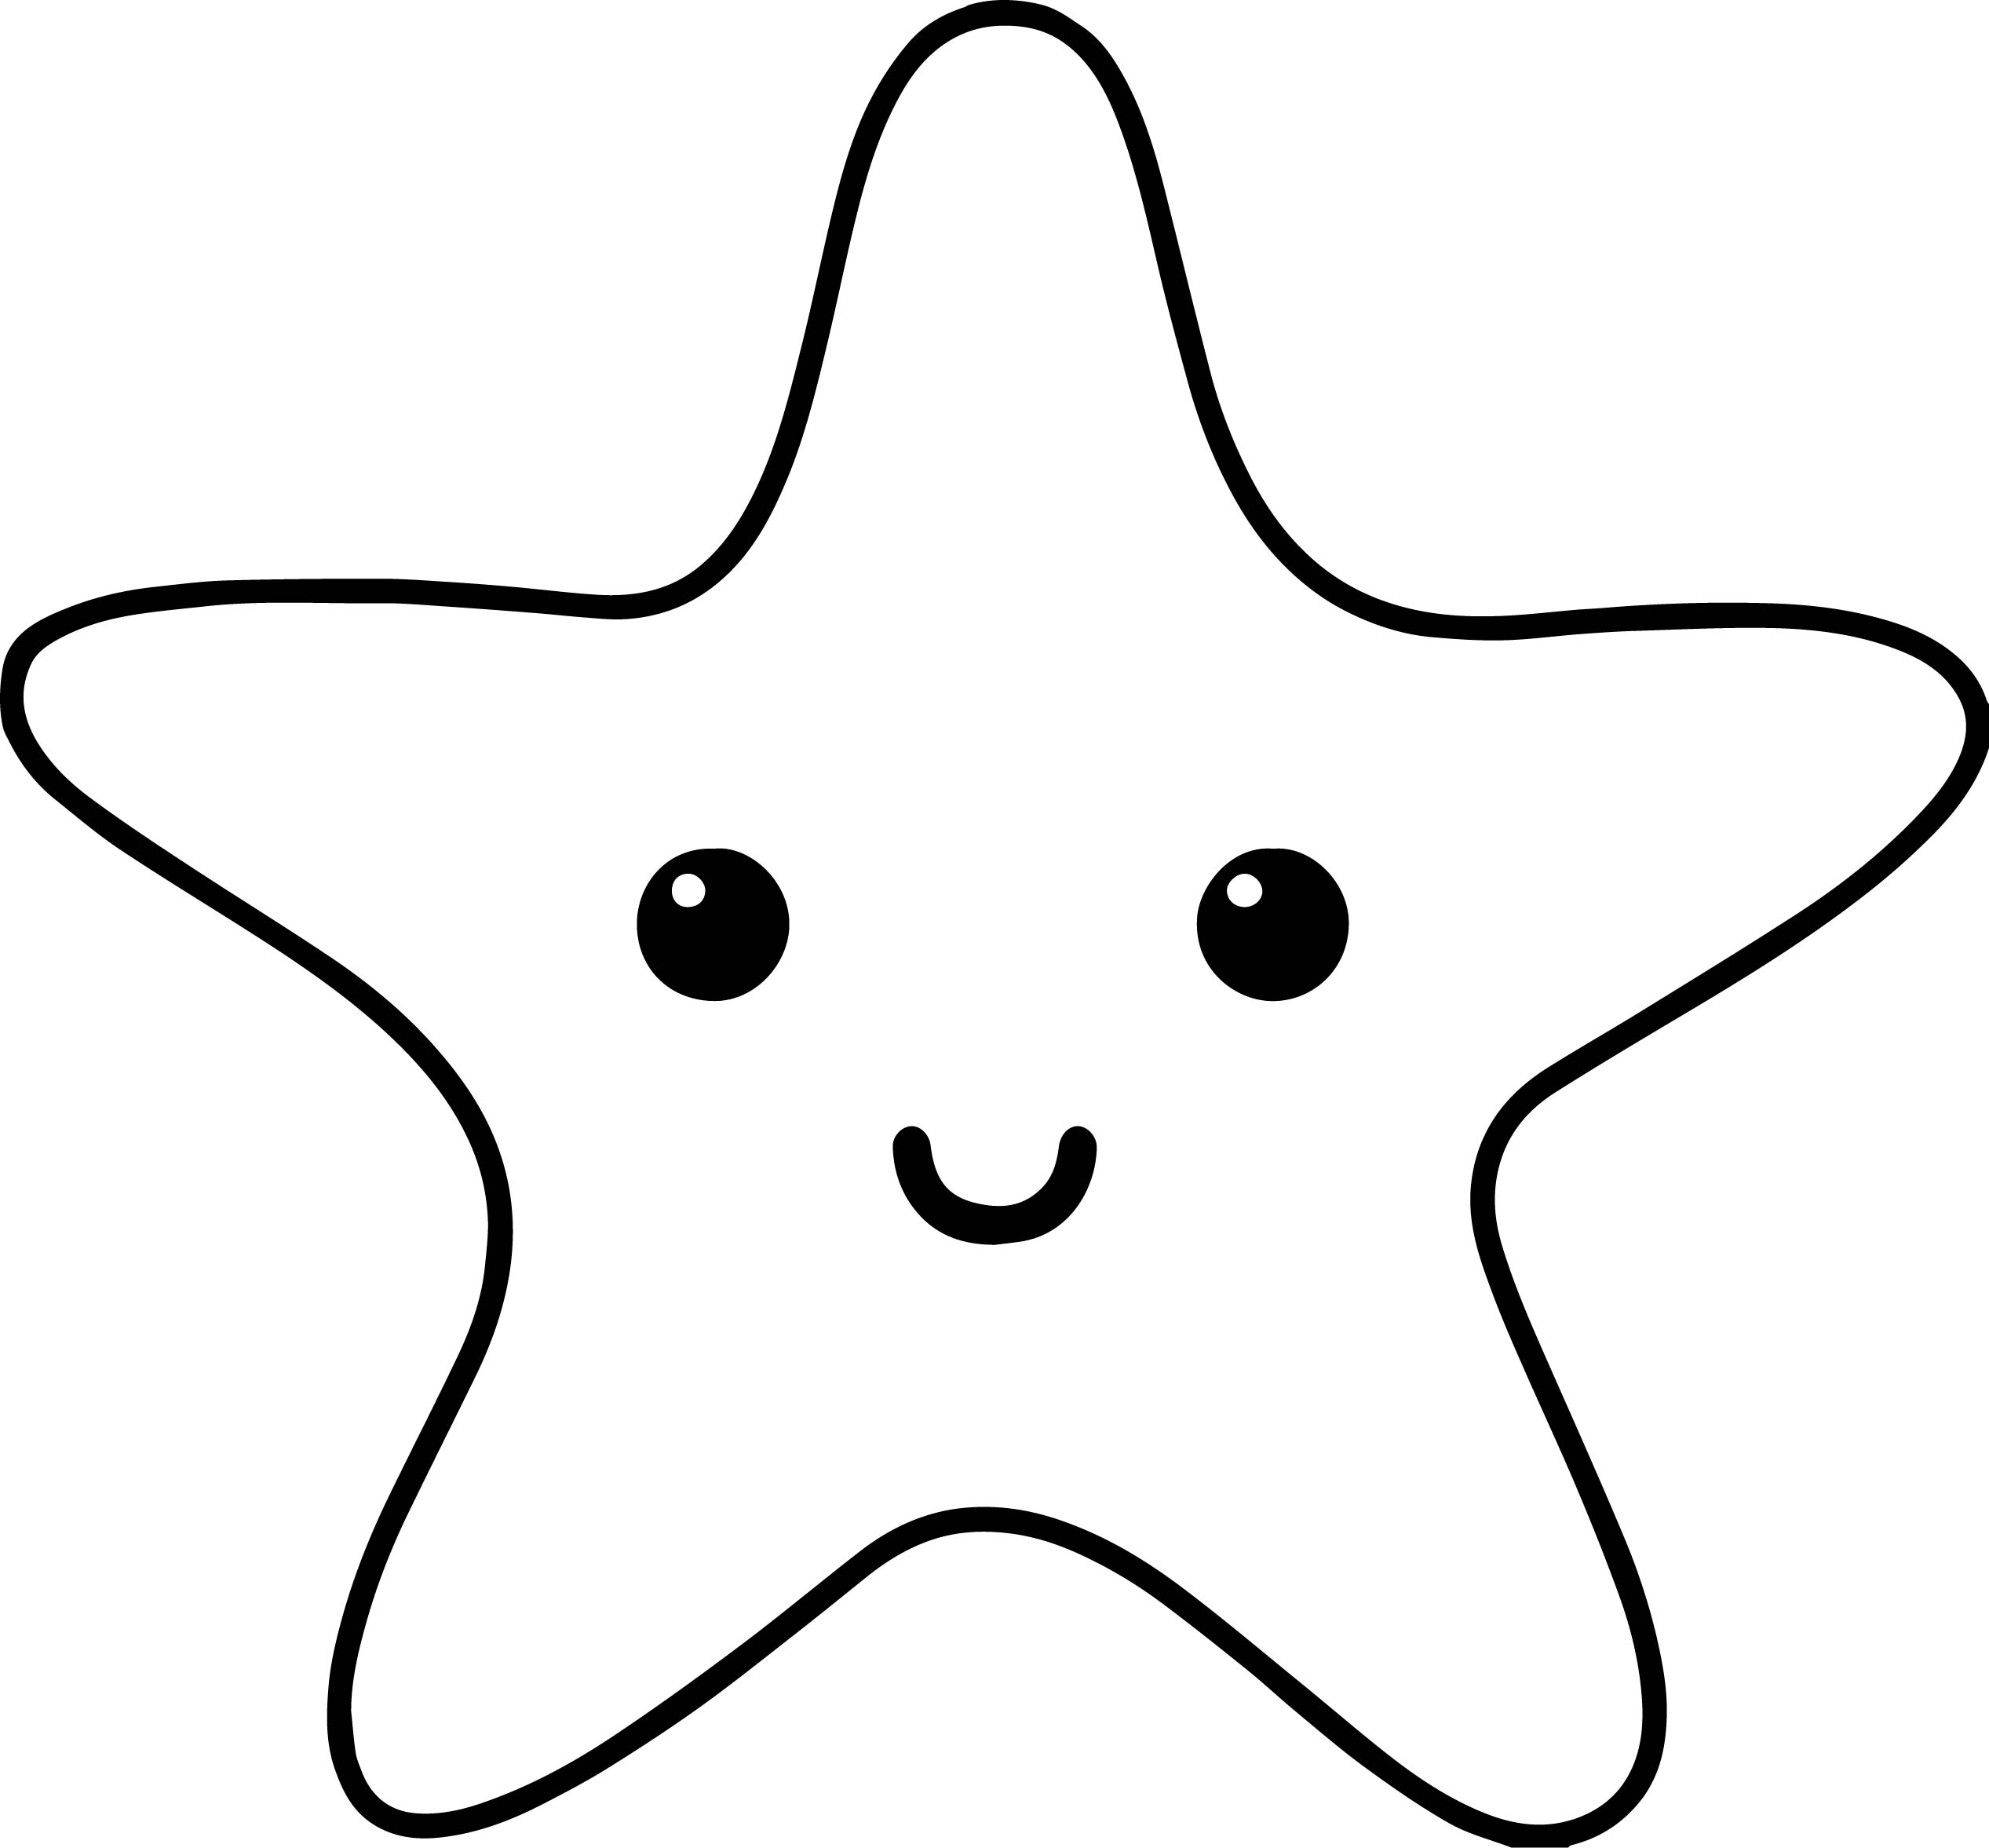 starfish coloring pages for tracing - photo#24